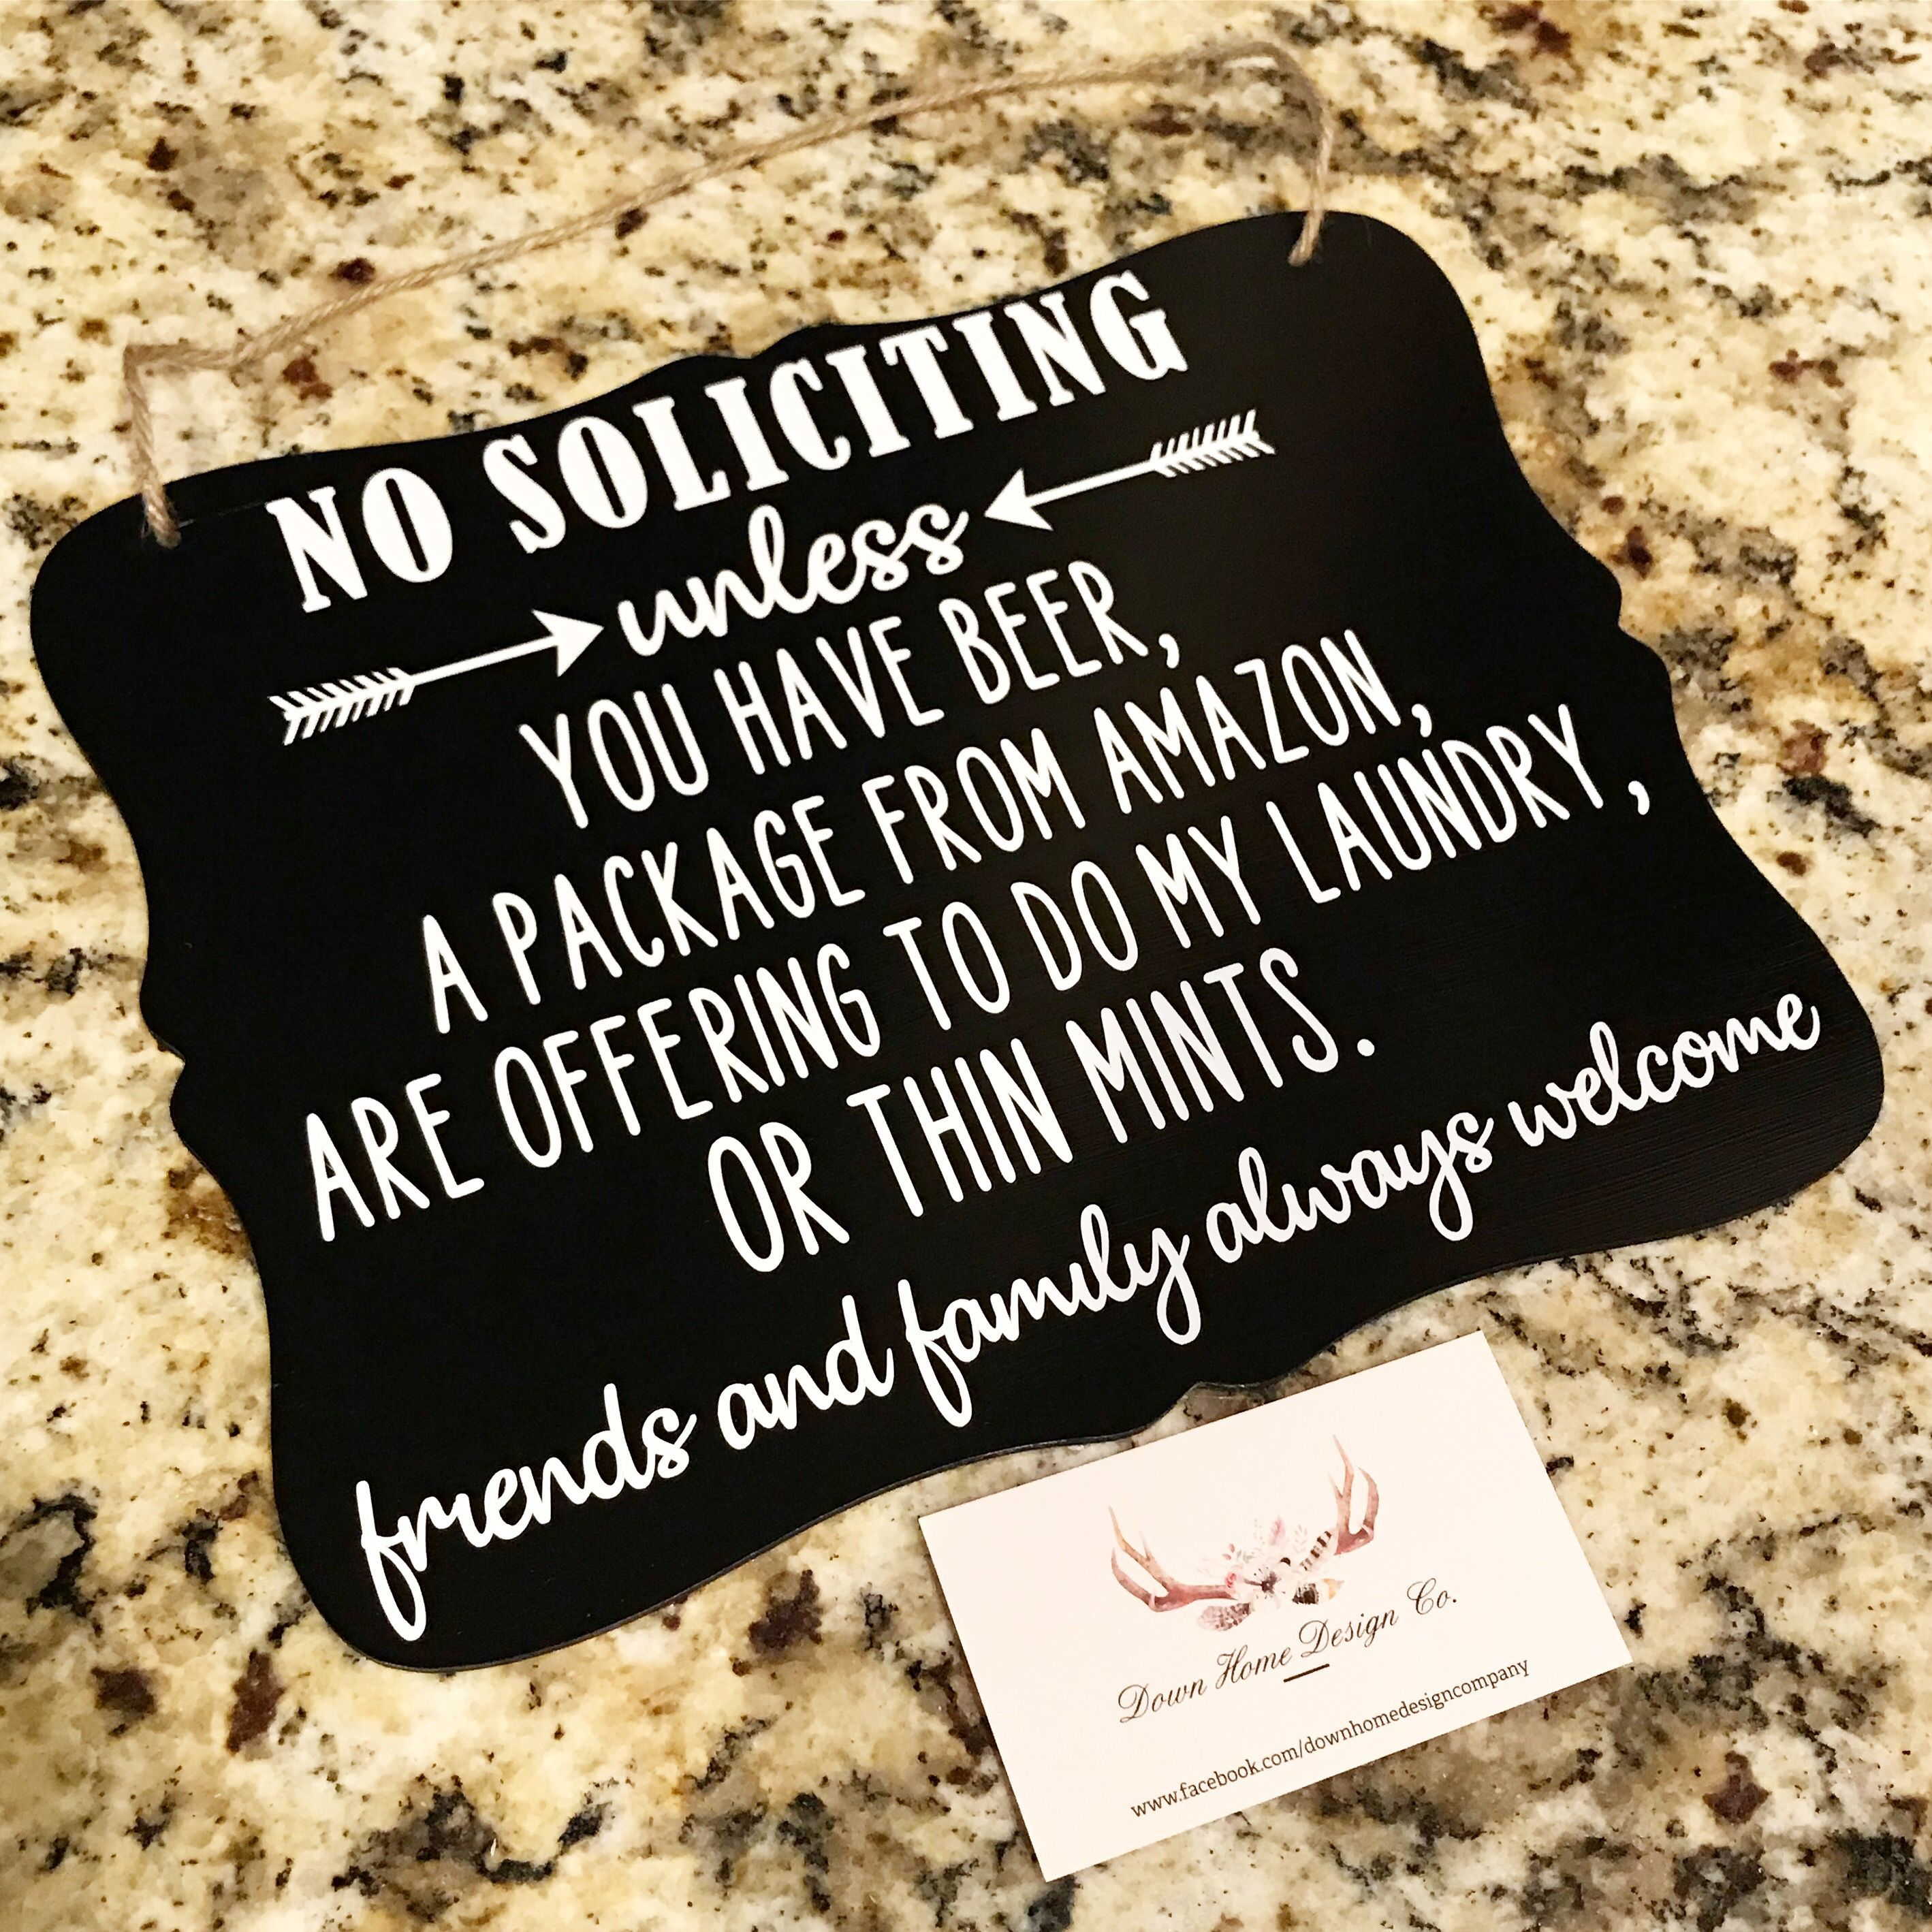 Cute No Soliciting Sign #nosolicitingsignfunny No soliciting sign by @downhomedesignco #sign #homedecor #nosoliciting #funny #homeinspo #decor #home #nosolicitingsignfunny